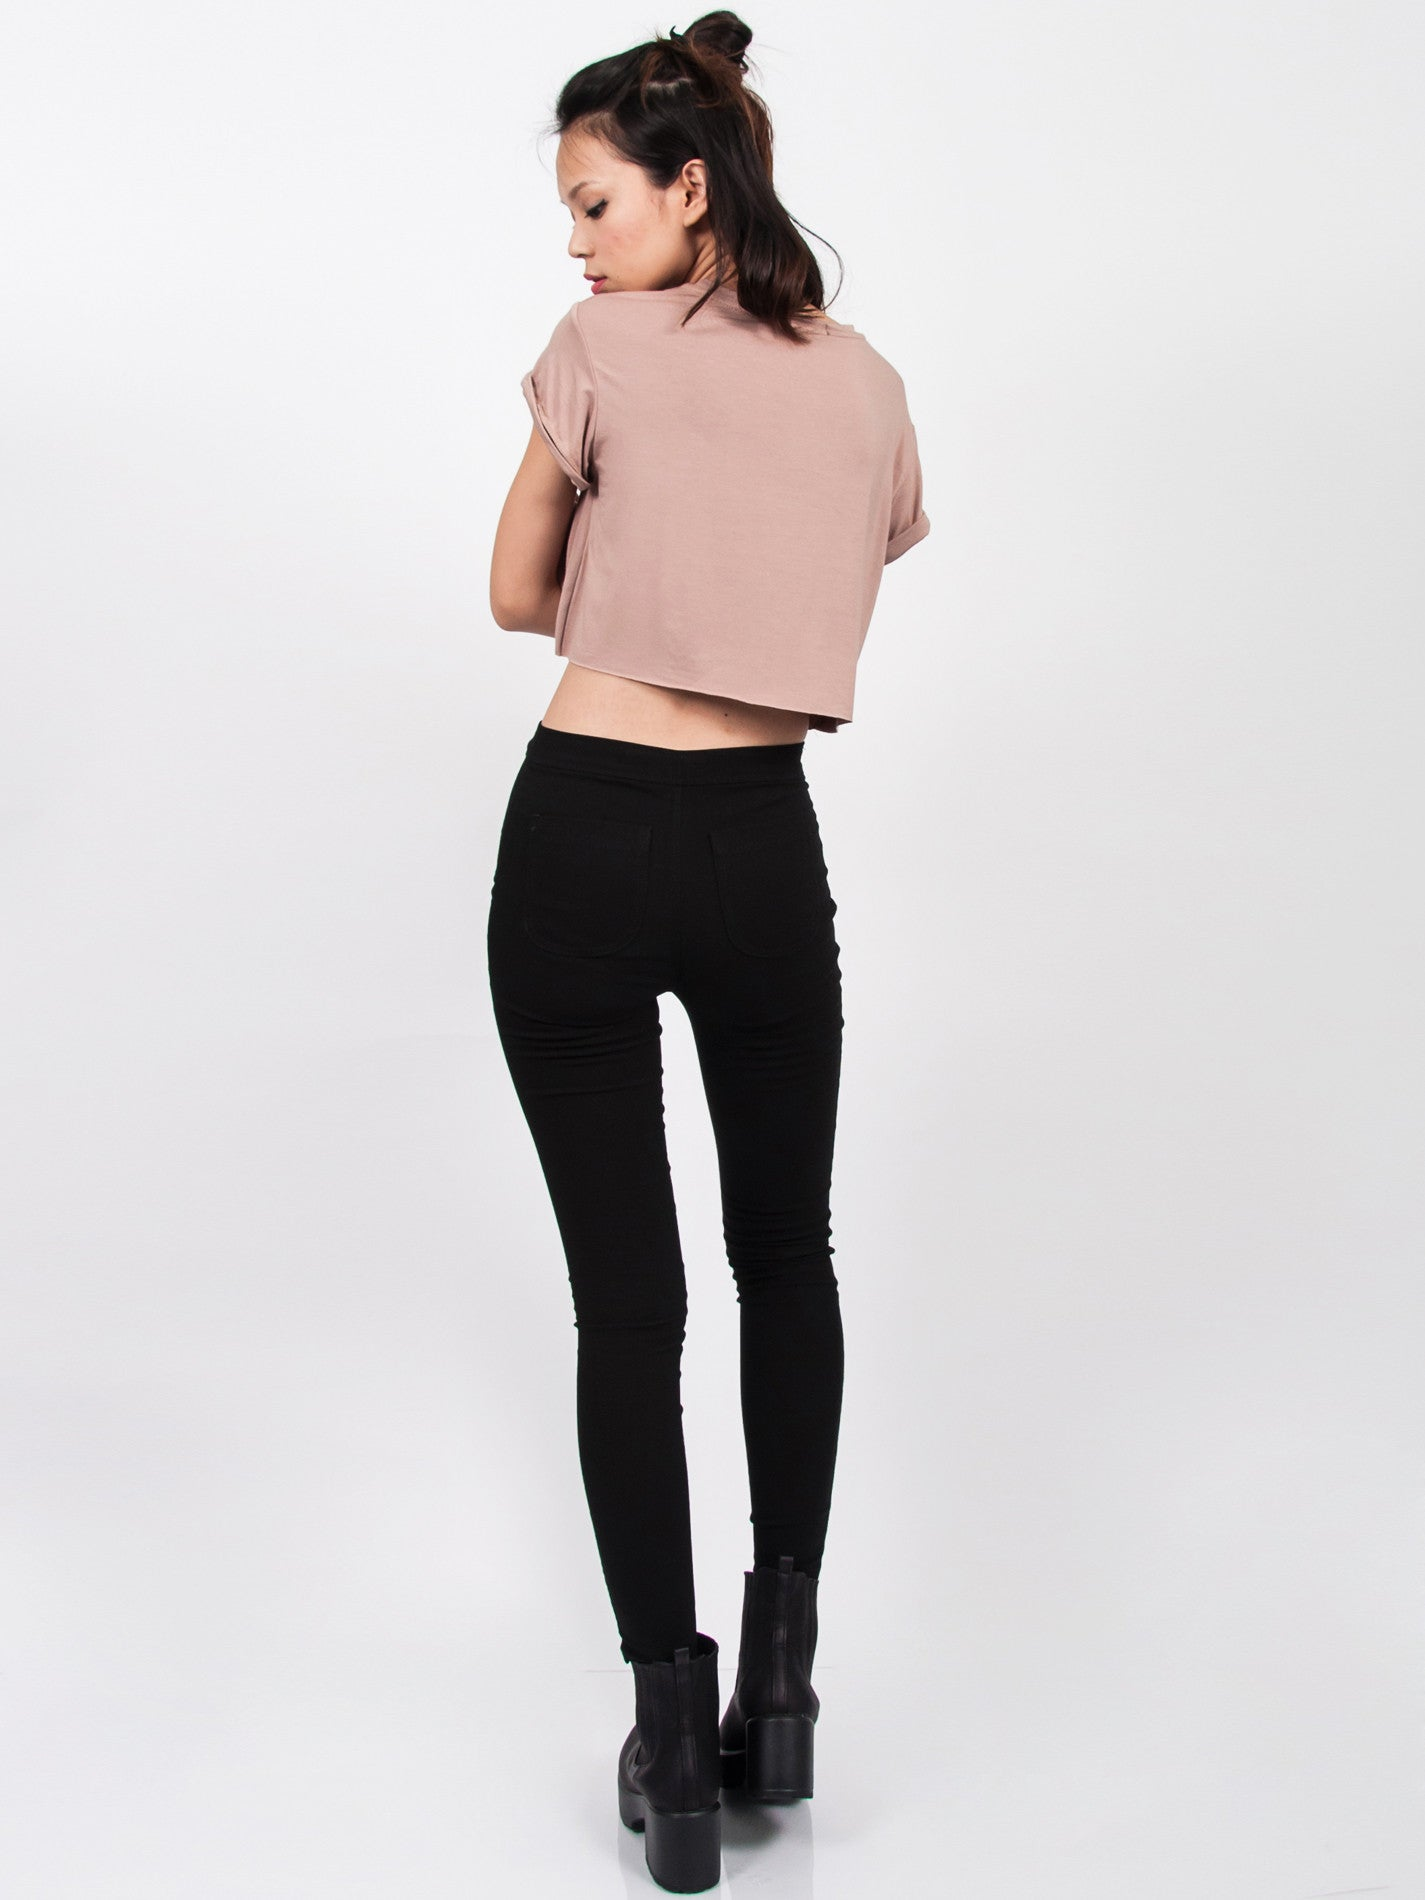 KENDALL Everyday Cropped Tee (Neutral)